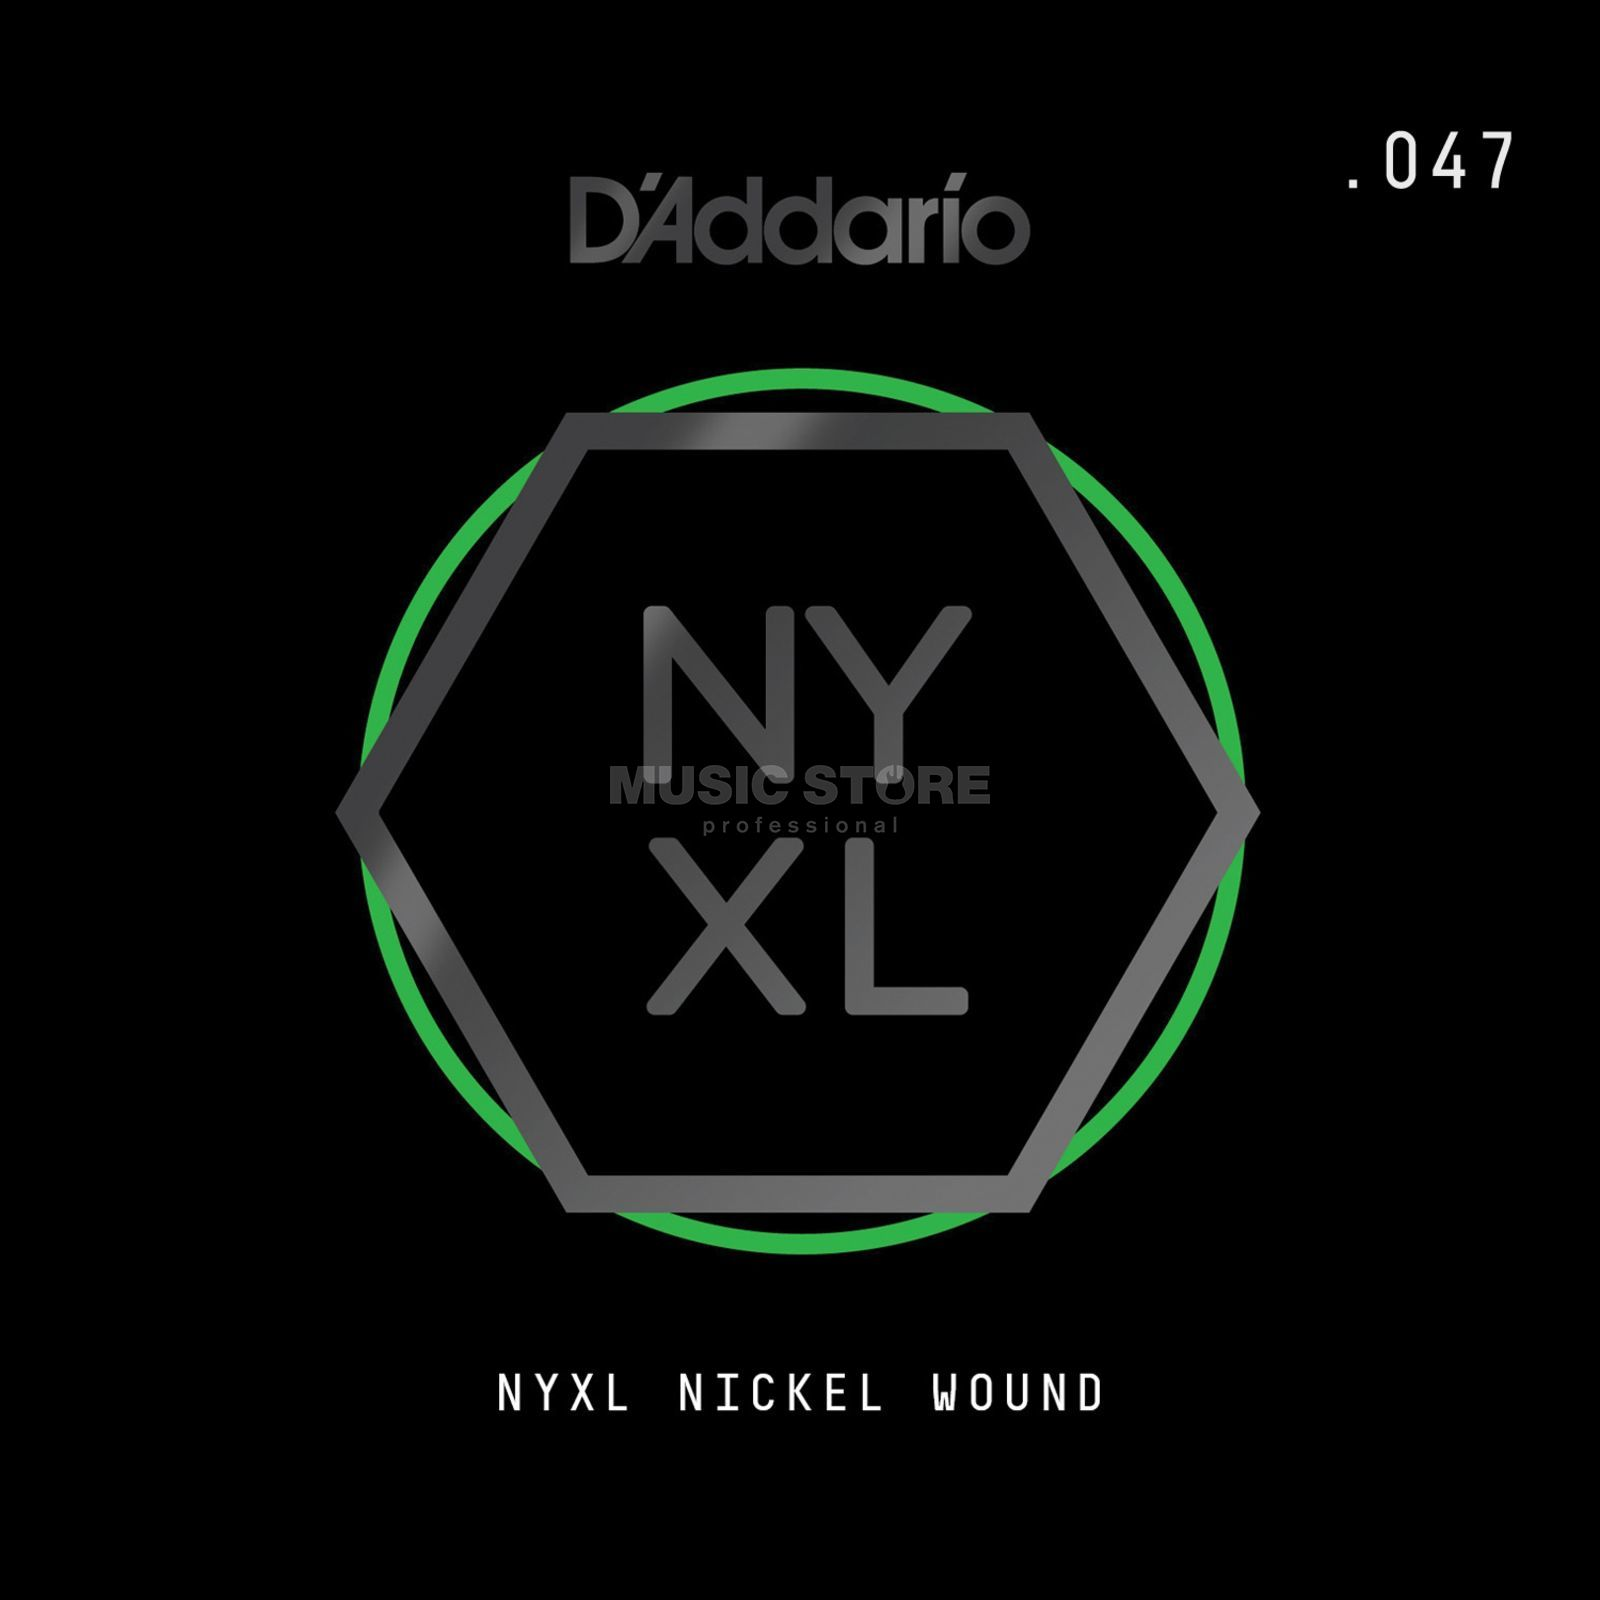 D'Addario NYNW047 Single String Nickel Wound Product Image